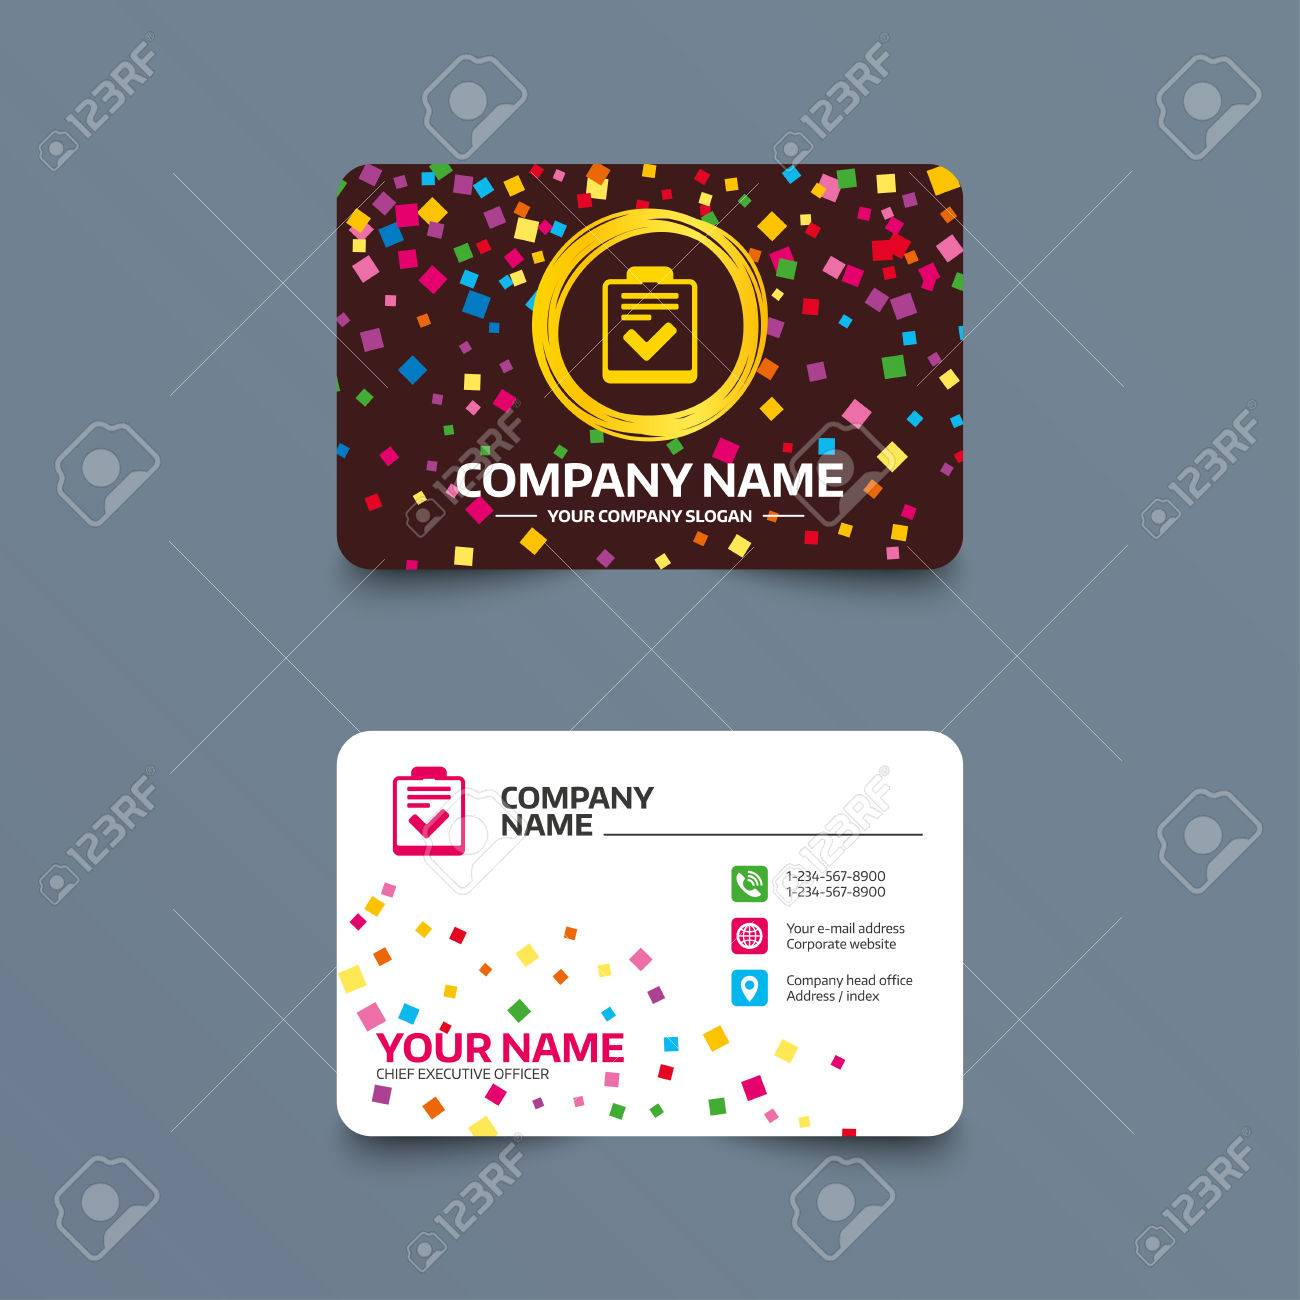 Business card template with confetti pieces checklist sign icon business card template with confetti pieces checklist sign icon control list symbol survey reheart Choice Image